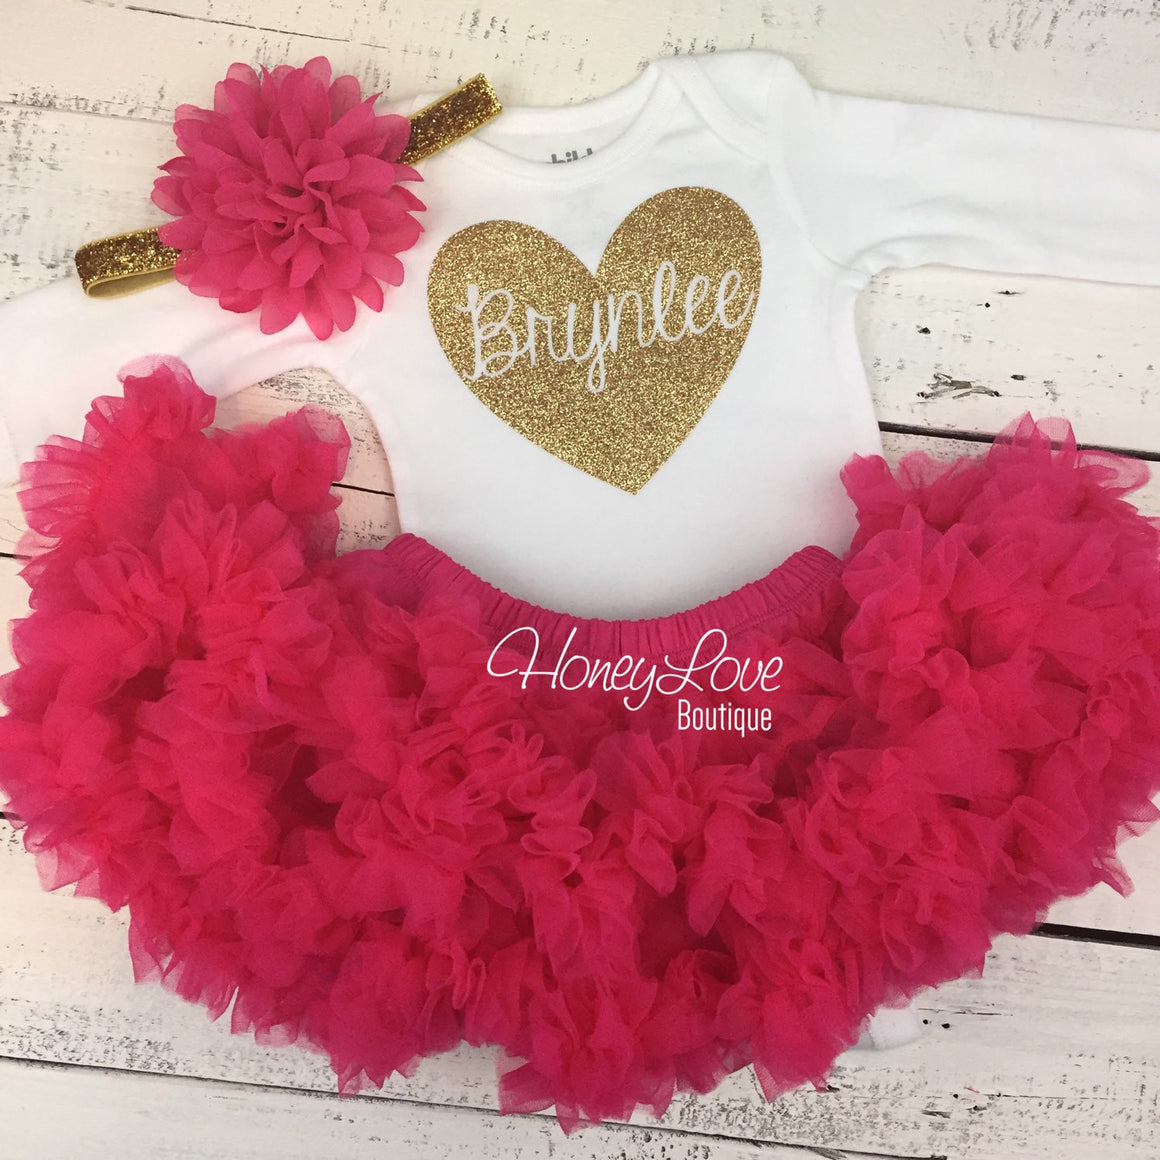 PERSONALIZED Name inside Heart - Gold/Silver and Watermelon Pink Pettiskirt - HoneyLoveBoutique